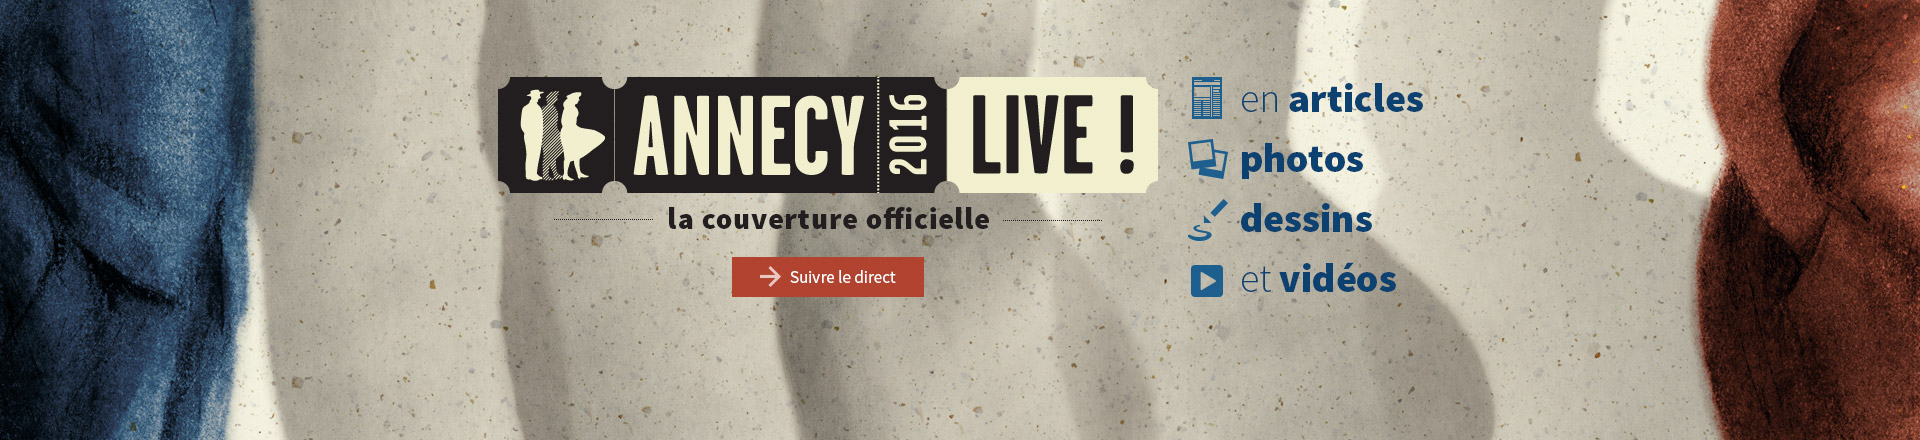 Annecy Live 2016